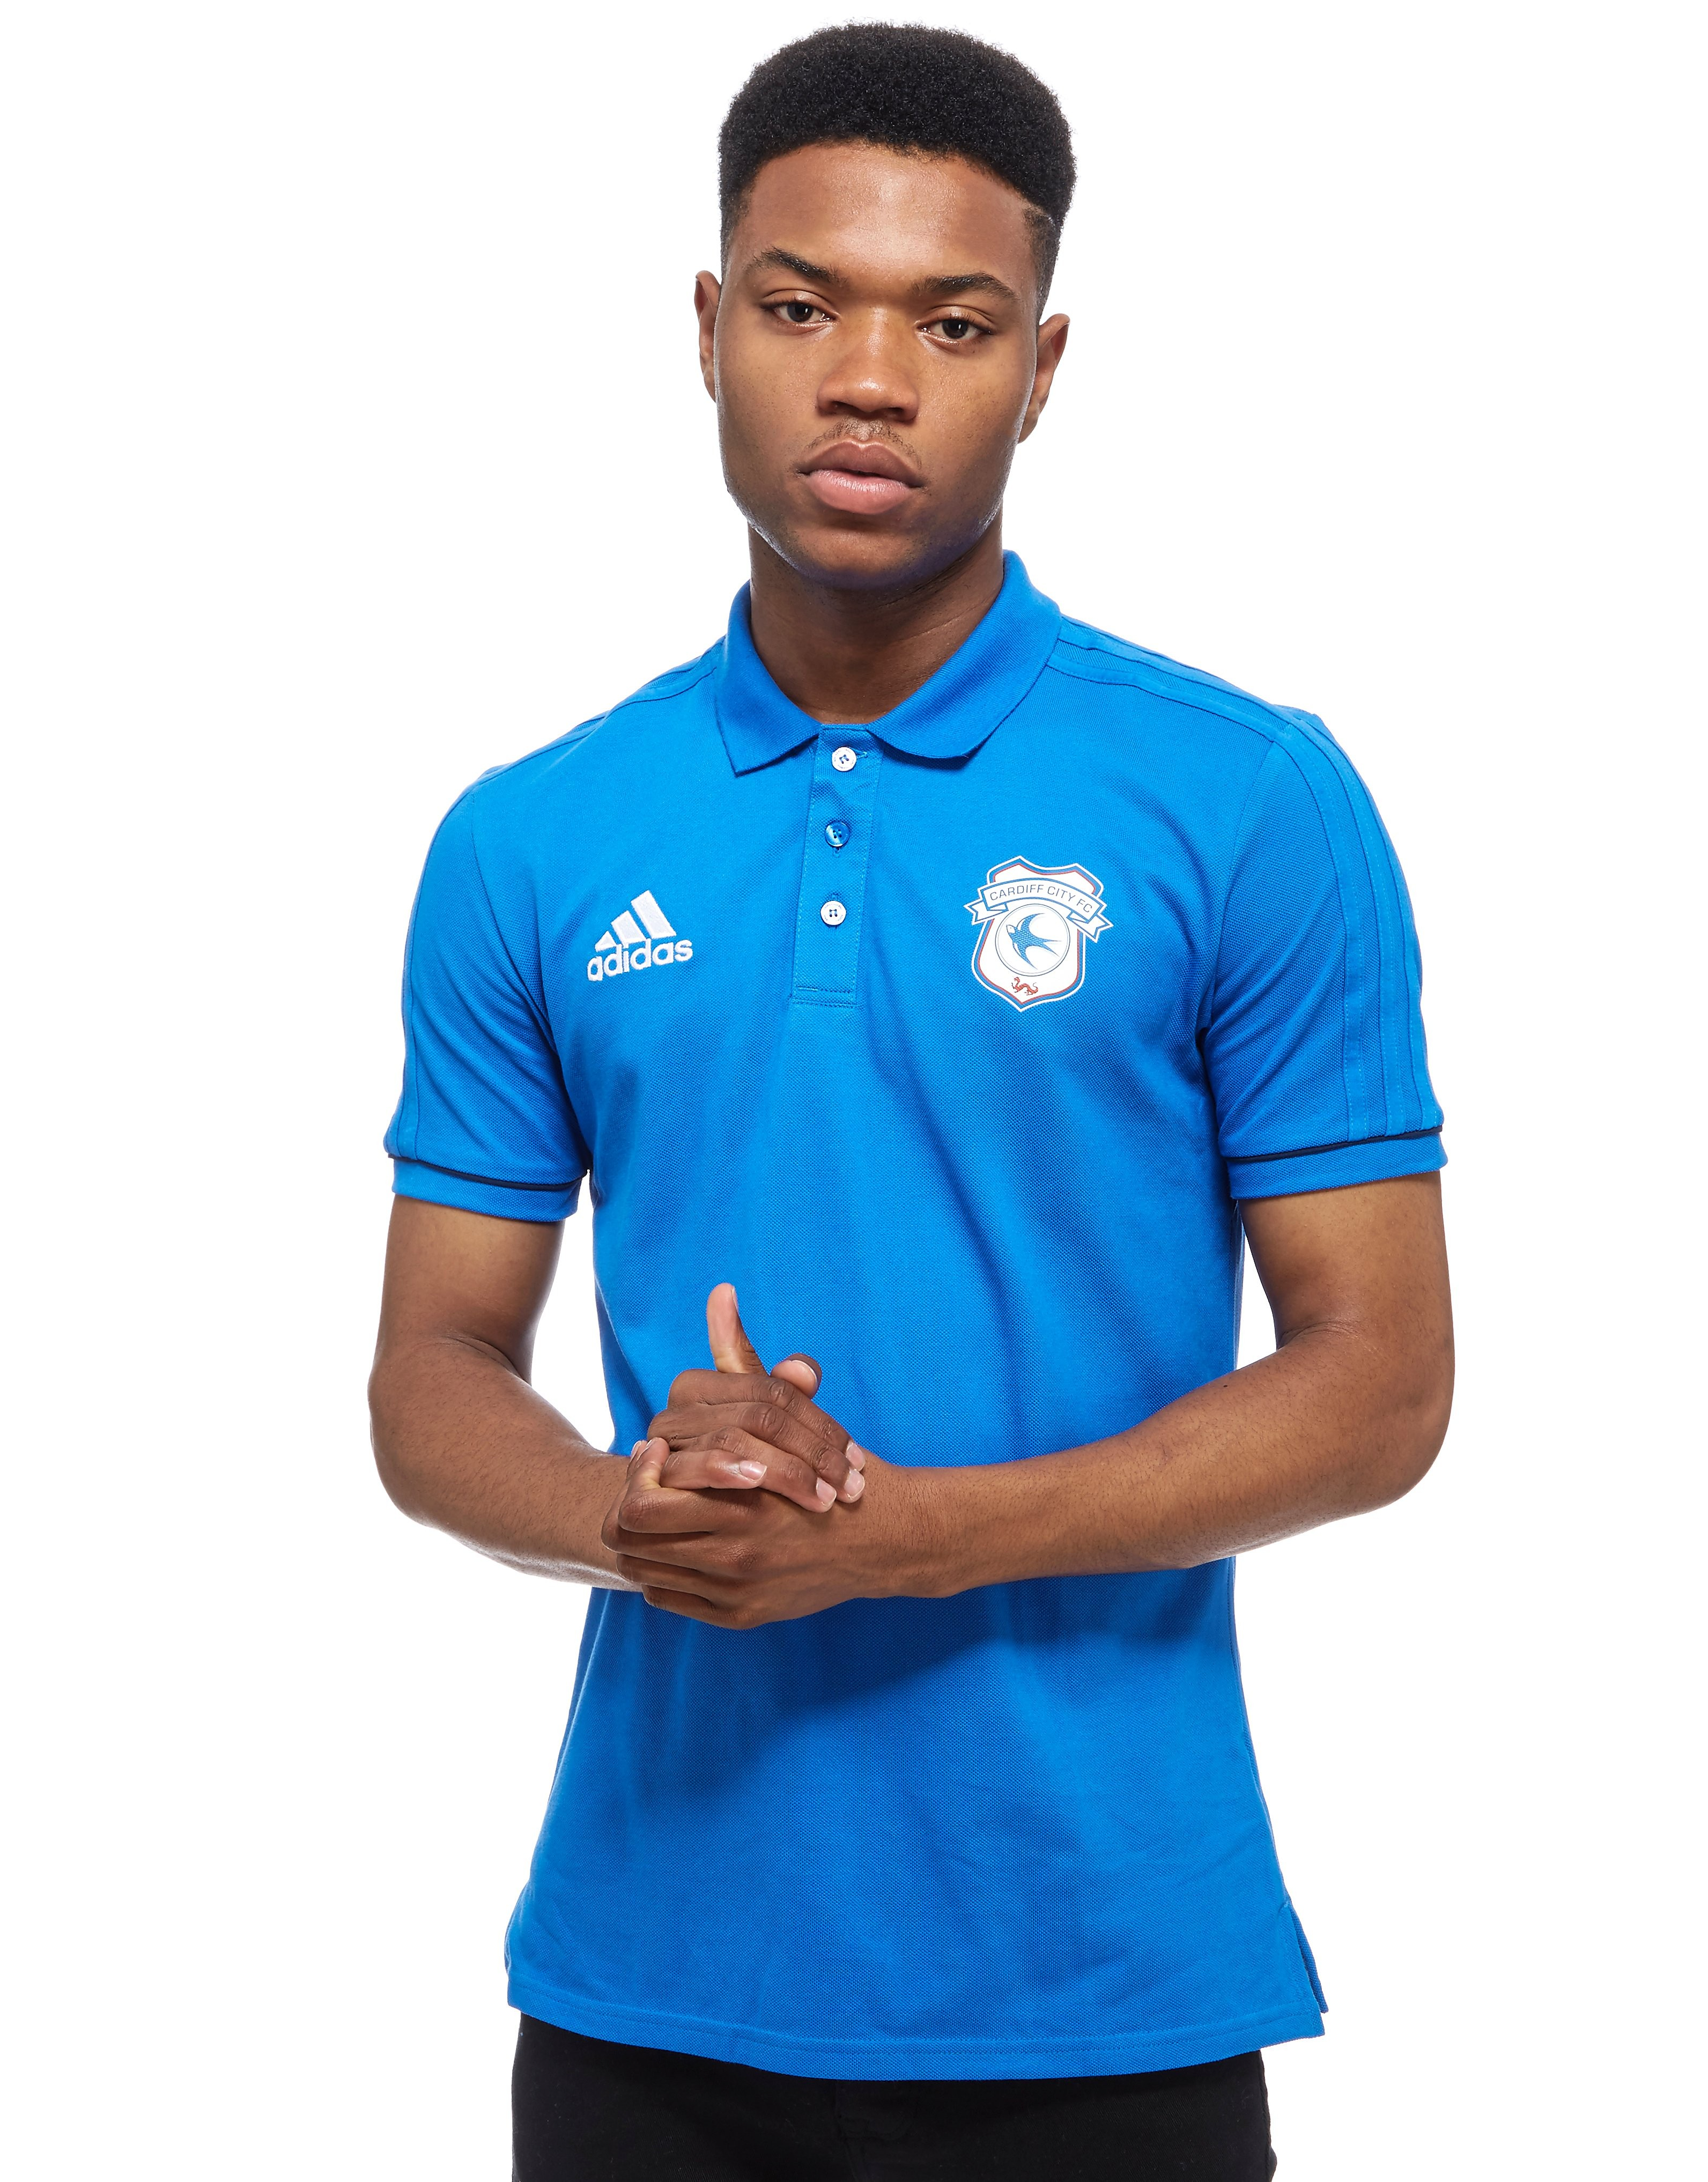 adidas Cardiff City Polo Shirt